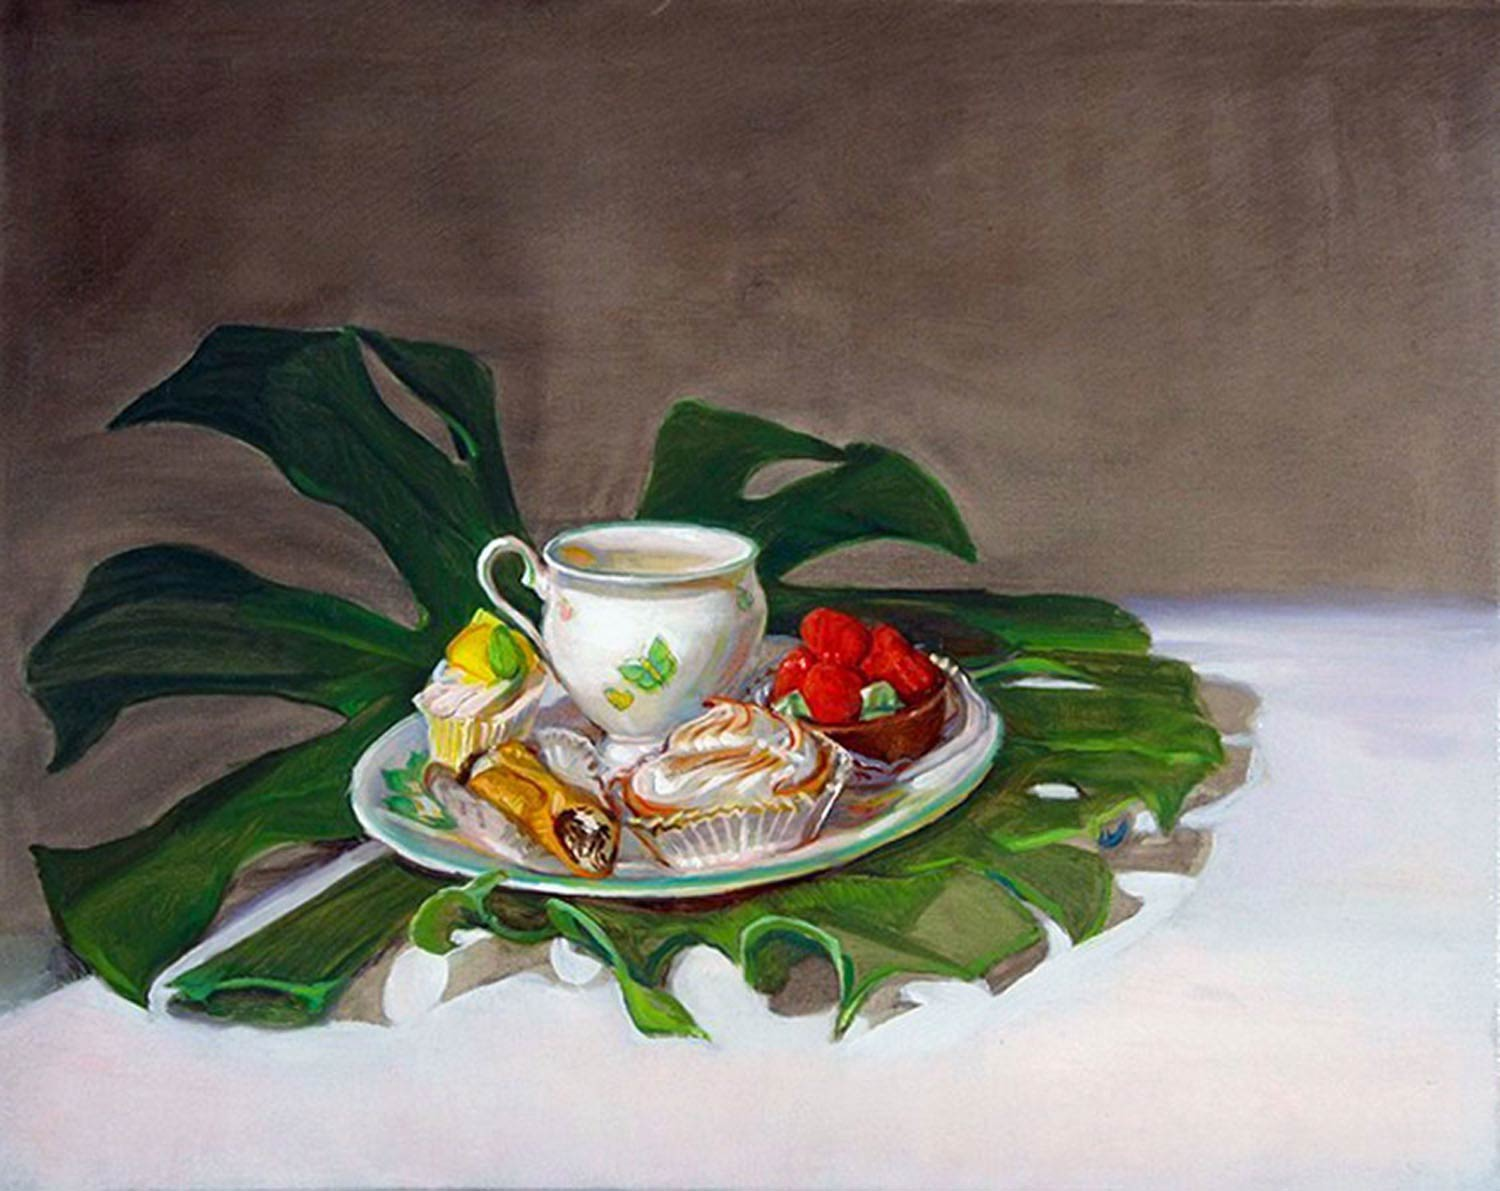 Confections 24 x 30 in oil canvas 2008